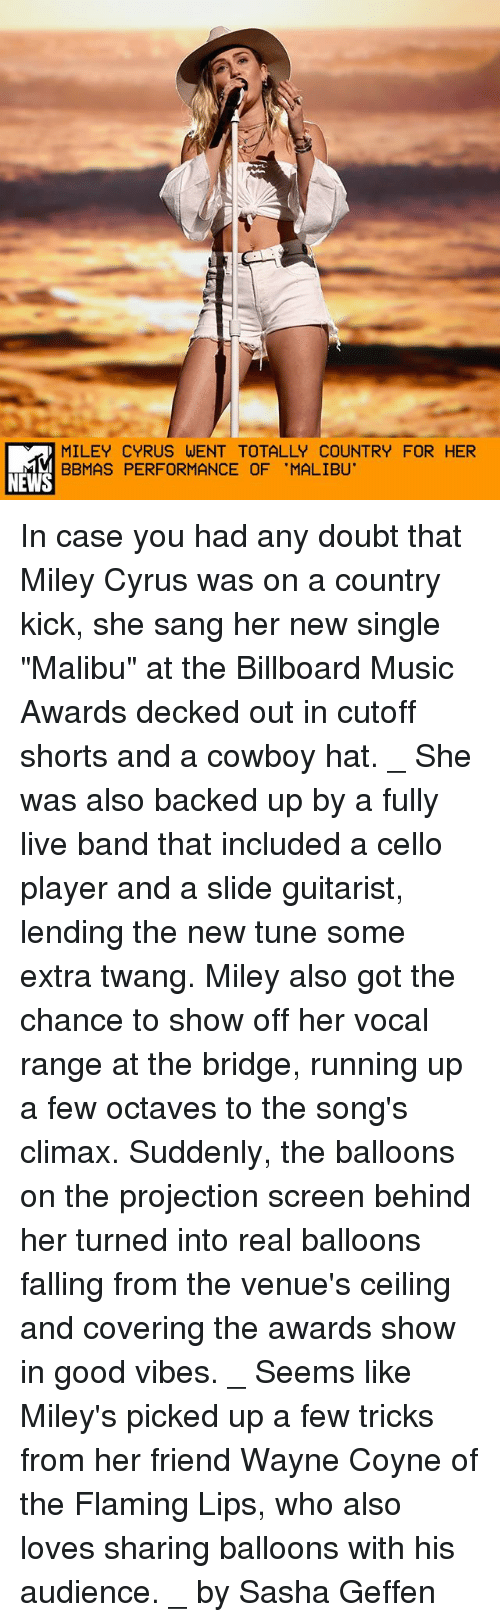 """guitarist: MILEY CYRUS WENT TOTALLY COUNTRY FOR HER  BBMAS PERFORMANCE OF 'MALIBU'  NEWS In case you had any doubt that Miley Cyrus was on a country kick, she sang her new single """"Malibu"""" at the Billboard Music Awards decked out in cutoff shorts and a cowboy hat. _ She was also backed up by a fully live band that included a cello player and a slide guitarist, lending the new tune some extra twang. Miley also got the chance to show off her vocal range at the bridge, running up a few octaves to the song's climax. Suddenly, the balloons on the projection screen behind her turned into real balloons falling from the venue's ceiling and covering the awards show in good vibes. _ Seems like Miley's picked up a few tricks from her friend Wayne Coyne of the Flaming Lips, who also loves sharing balloons with his audience. _ by Sasha Geffen"""